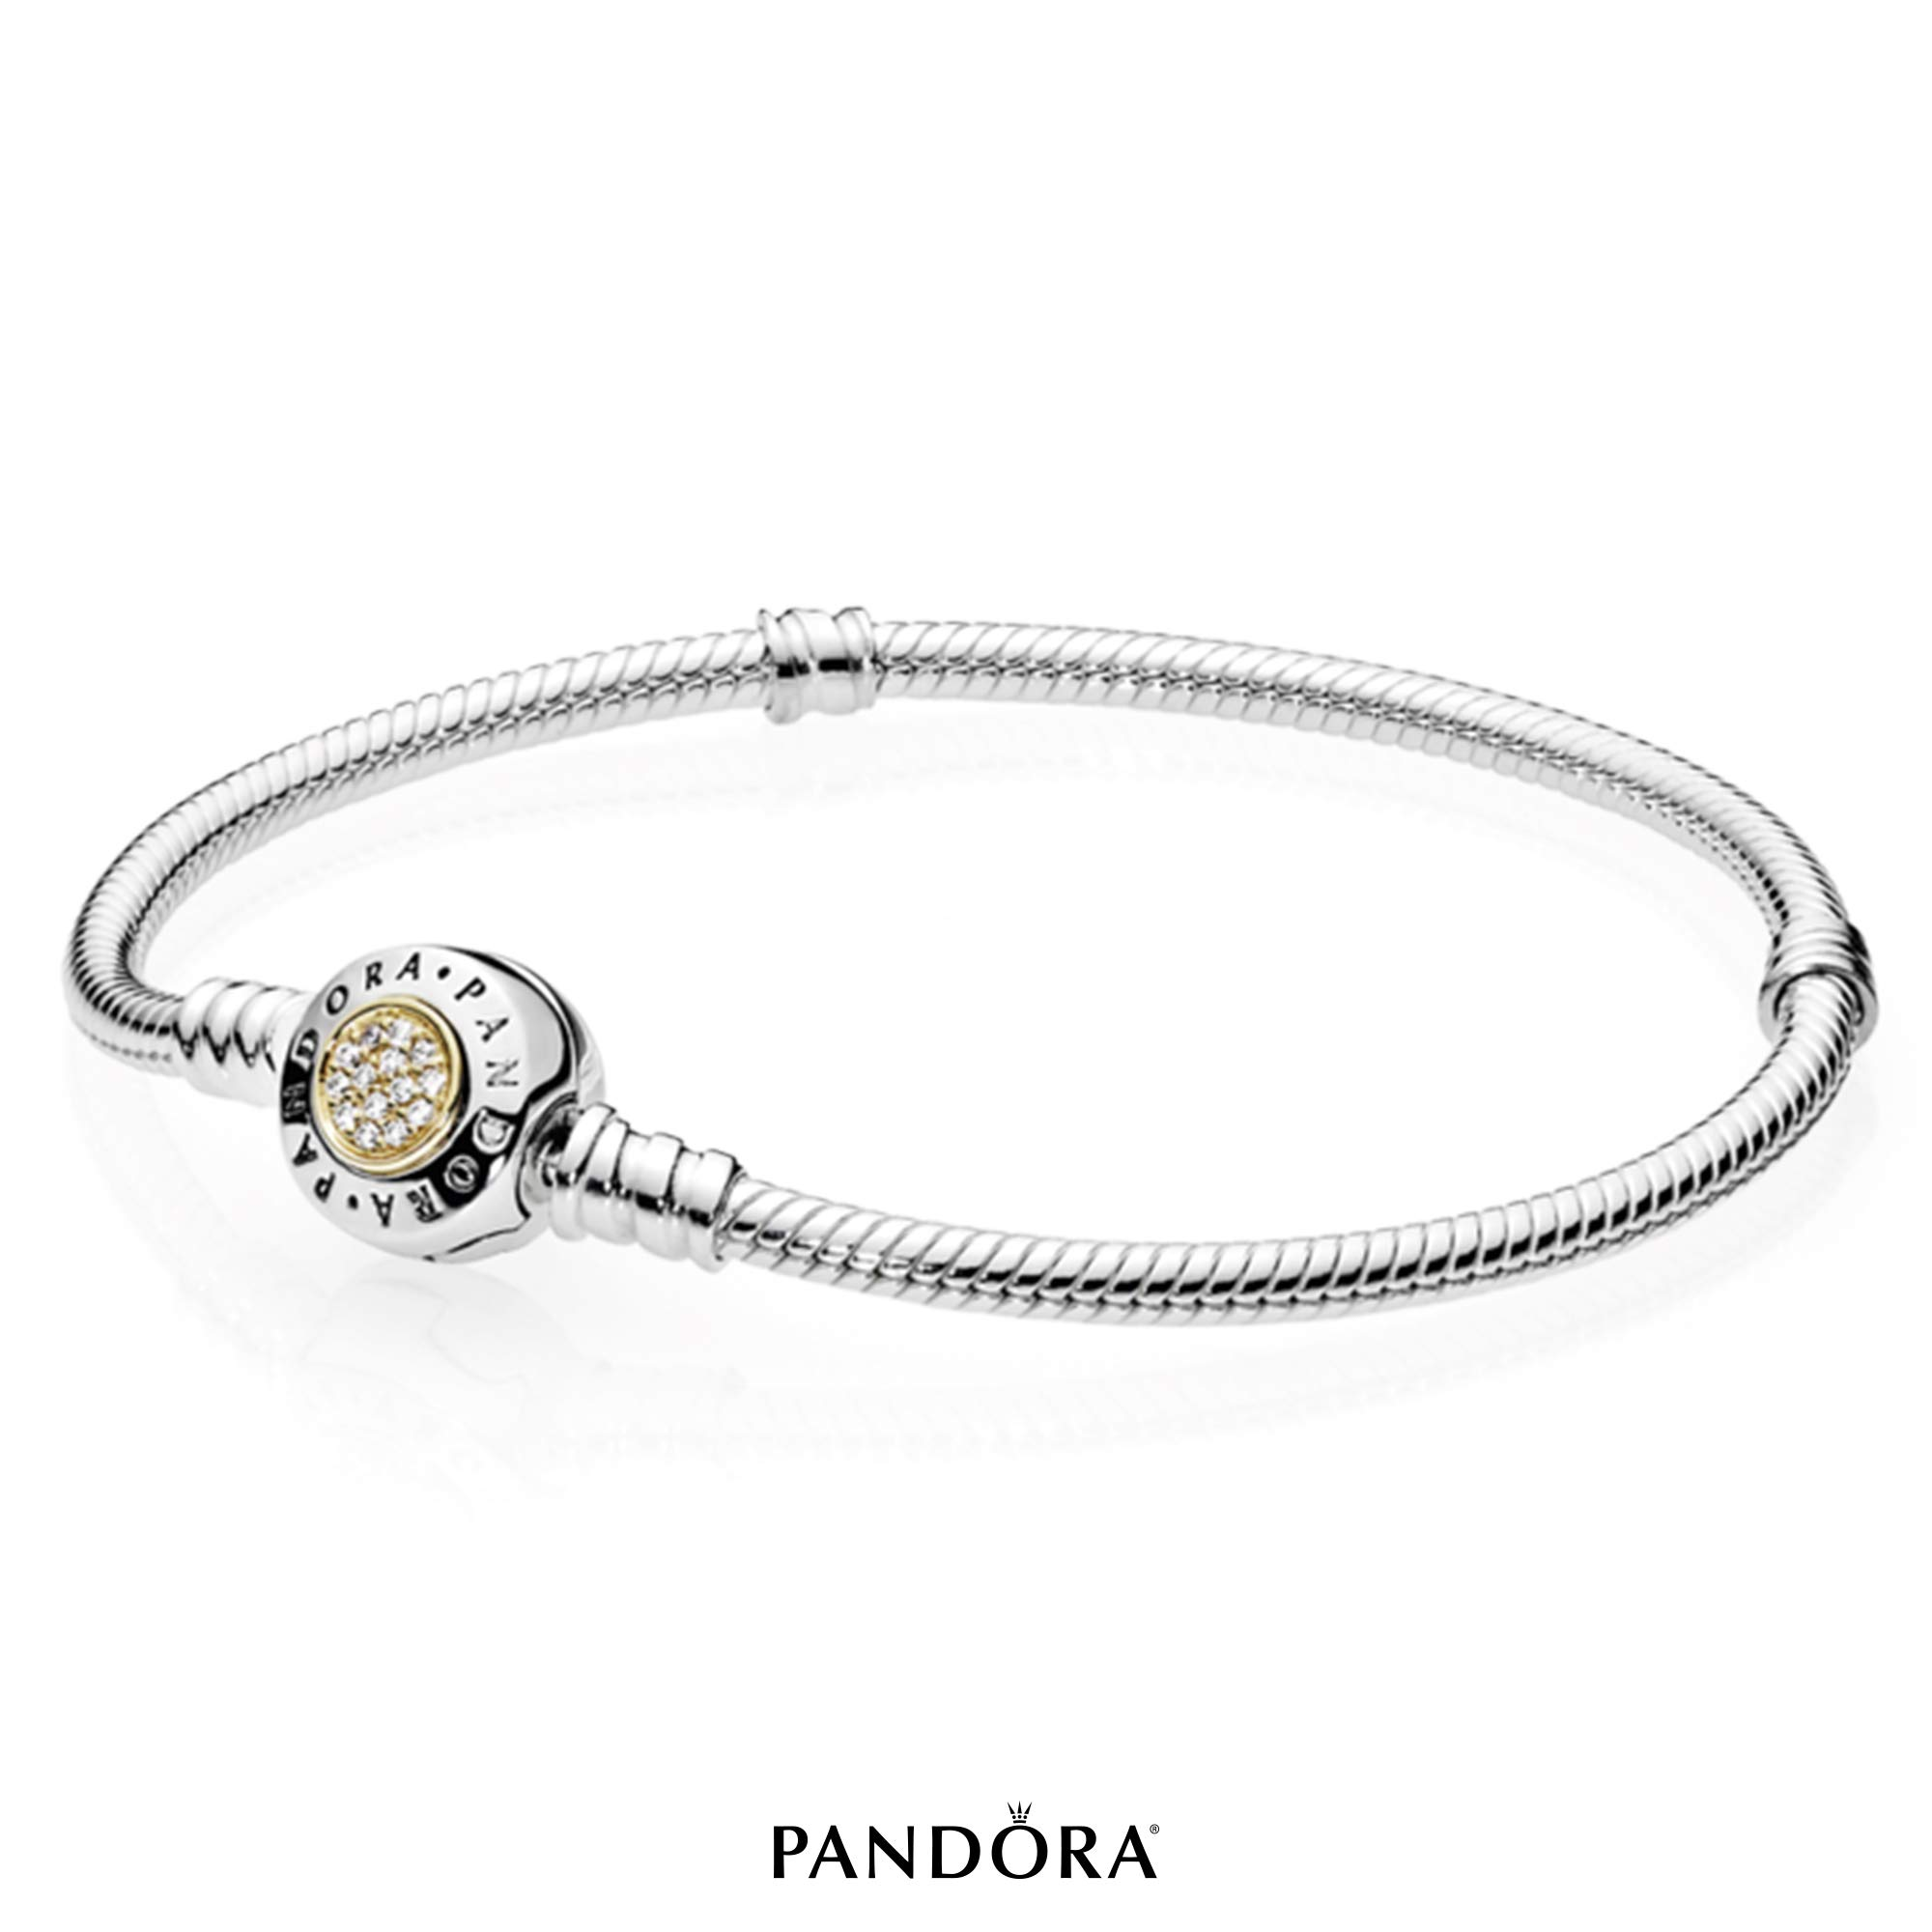 PANDORA Signature Bracelet, Two Tone - Sterling Silver and 14K Yellow Gold, Clear Cubic Zirconia, 7.9 in by PANDORA